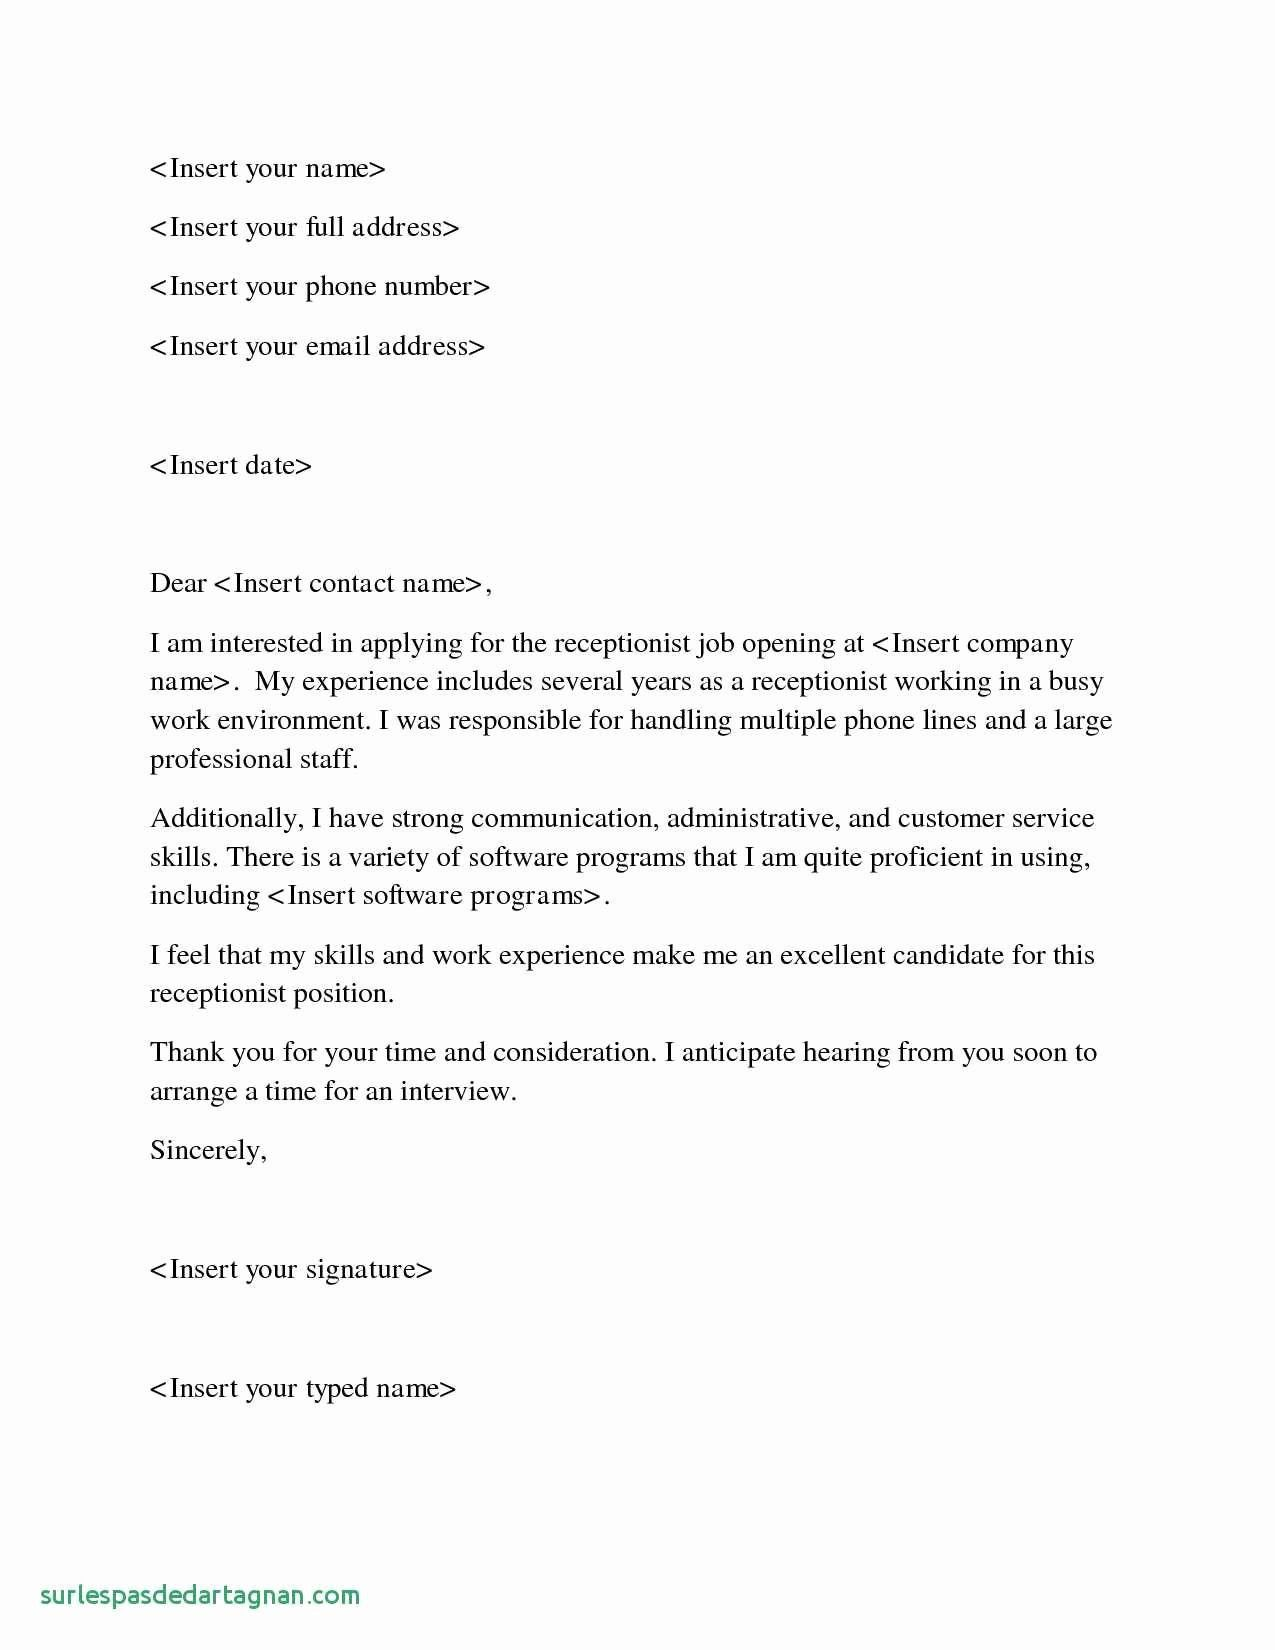 sample cover letter job application receptionist